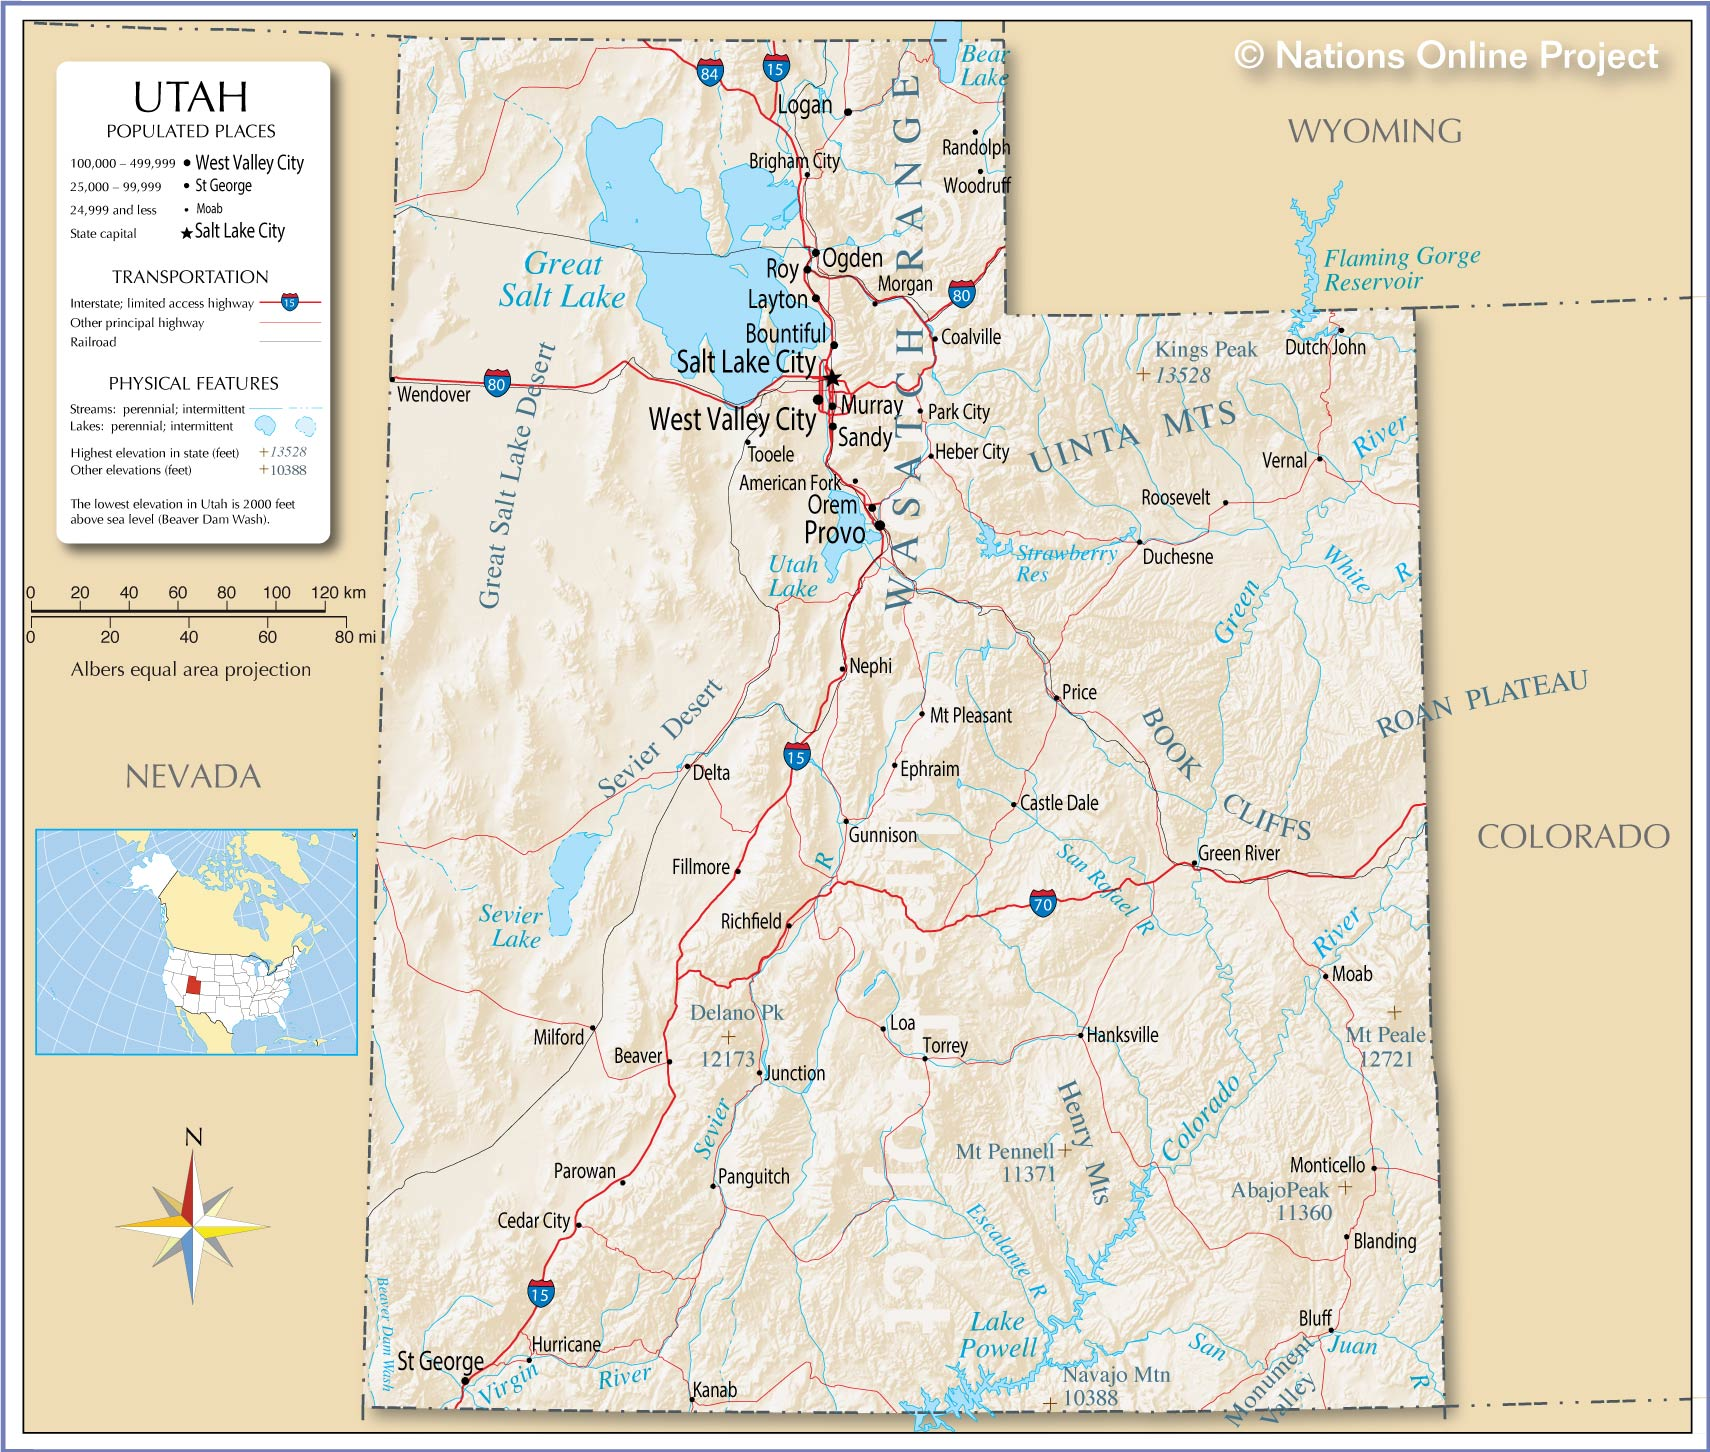 Reference Map of Utah, USA - Nations Online Project